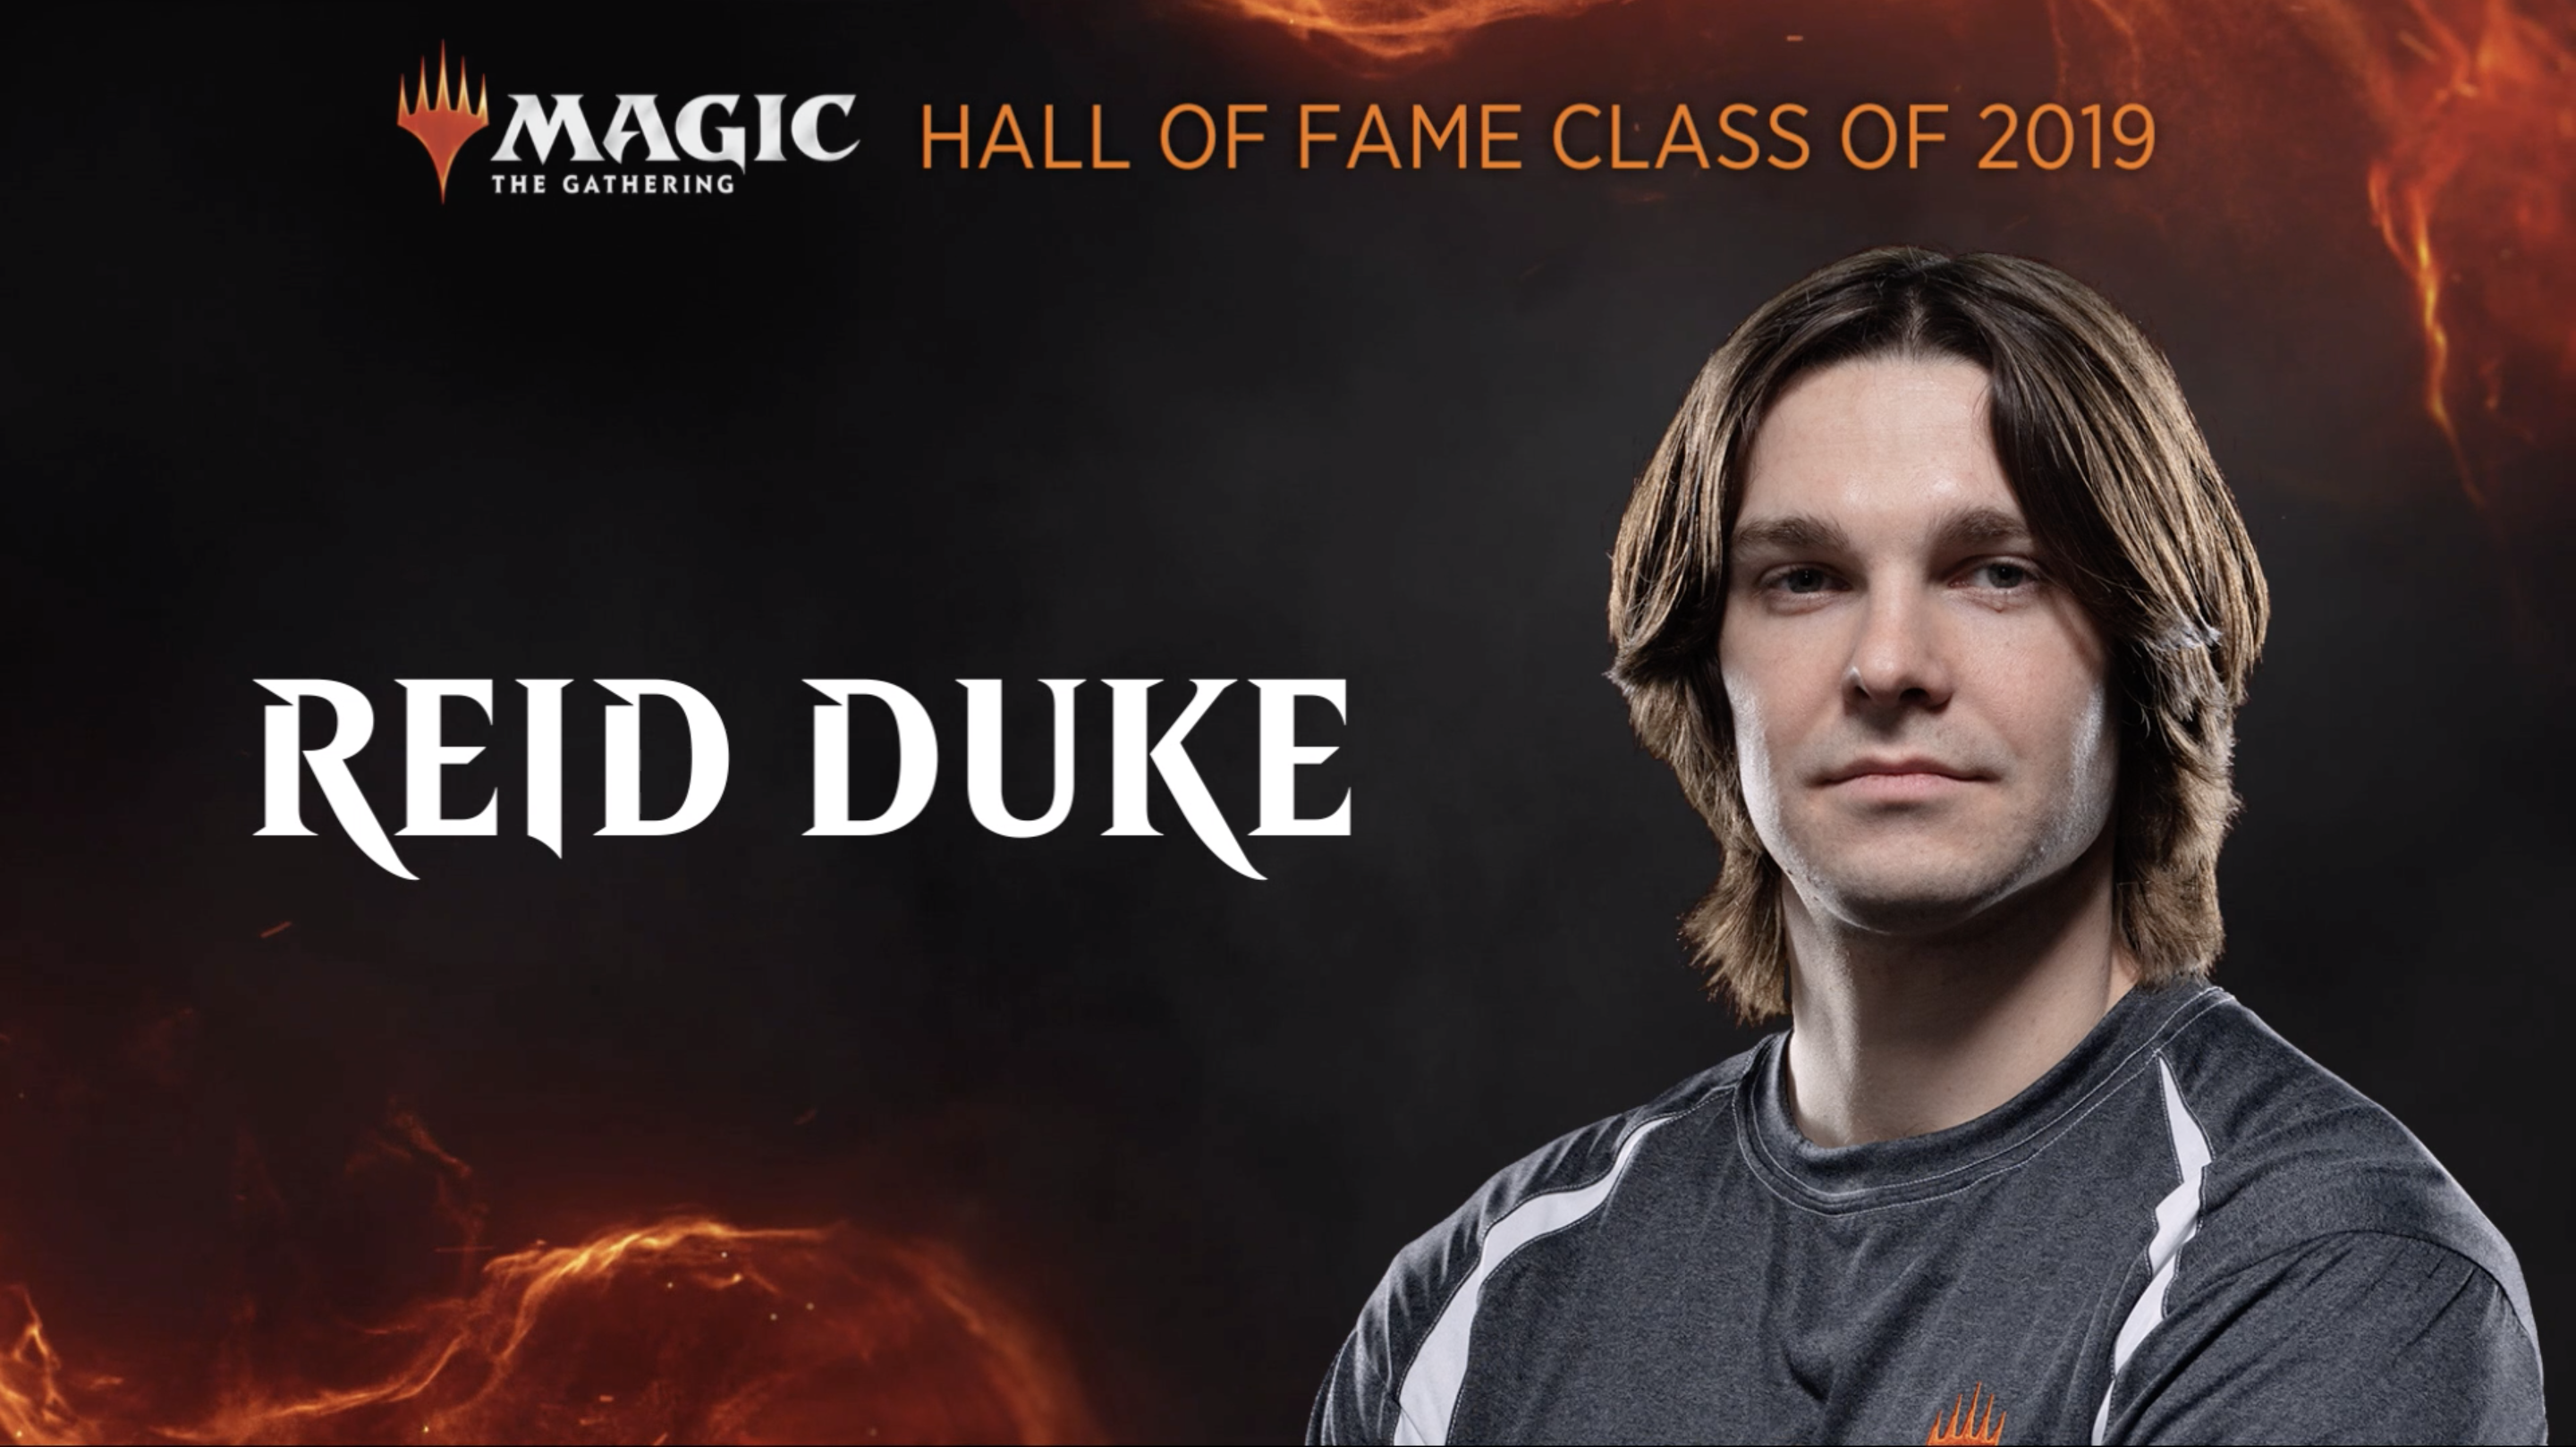 preview image for Reid Duke Elected to the Magic Hall of Fame - Hipsters of the Coast